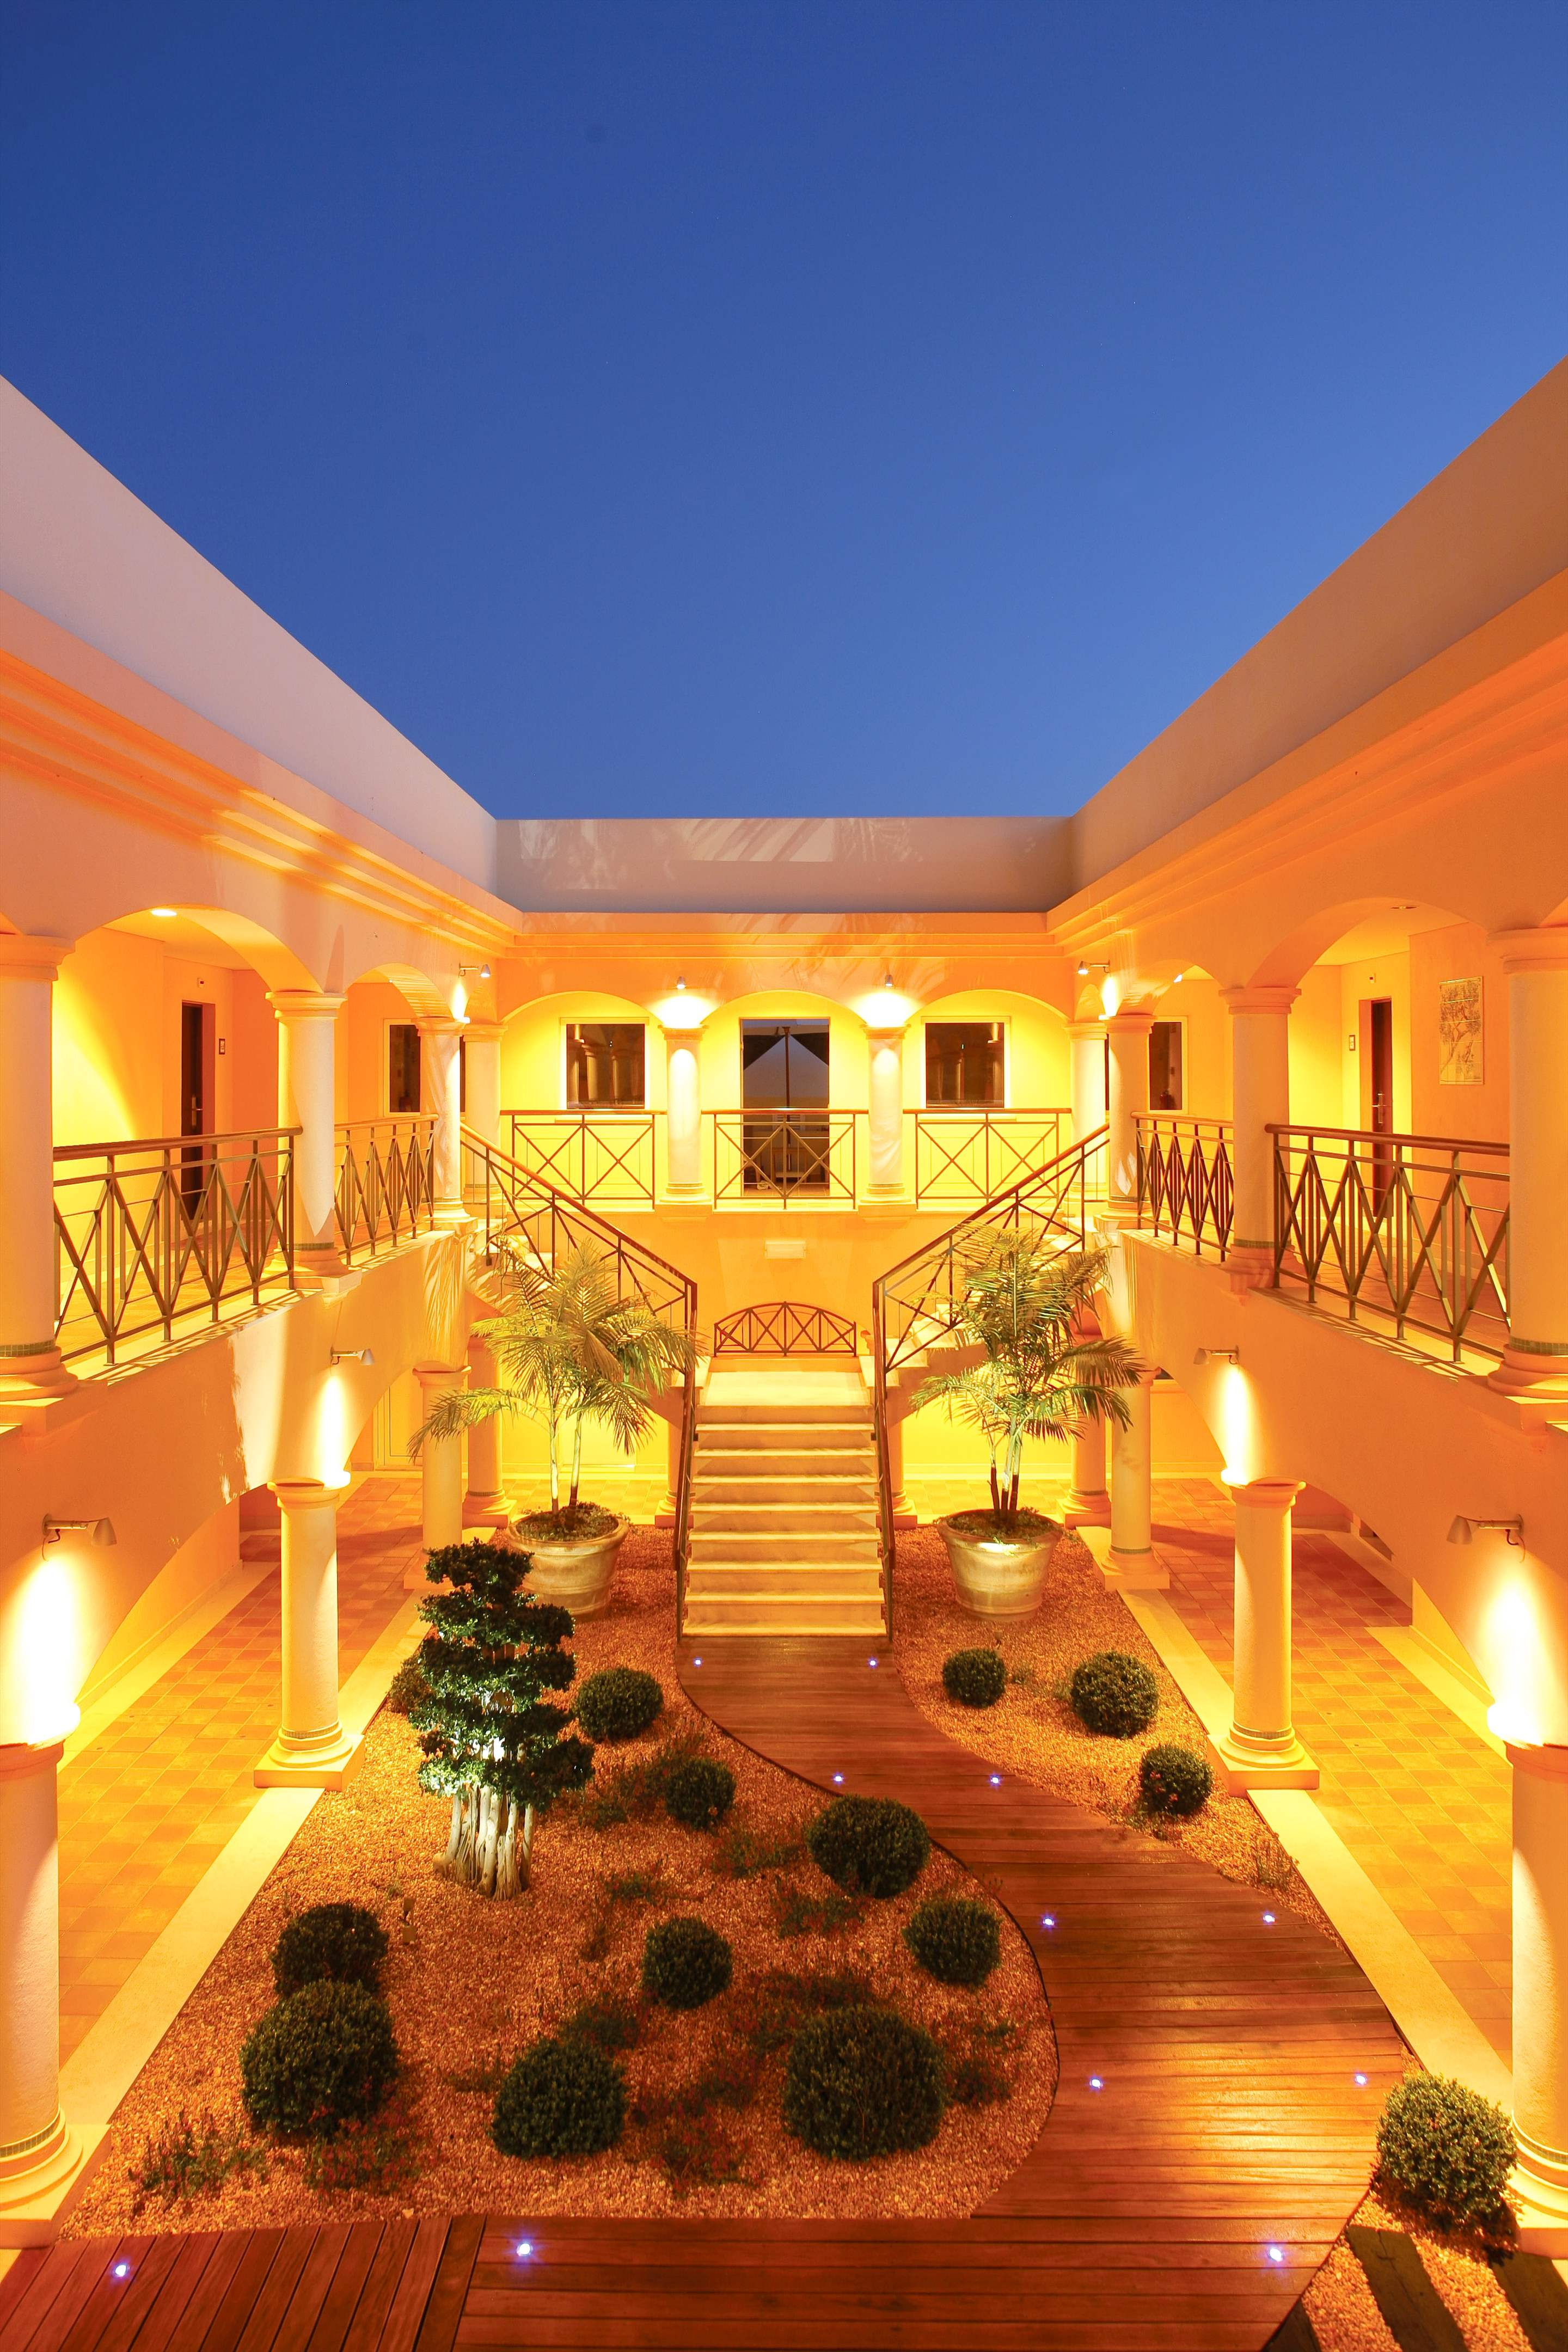 Vale dOliveiras Hotel Double/ Twin Room BB Basis, 1 bedroom hotel in Vale d'Oliveiras Resort & Spa, Algarve Photo #3